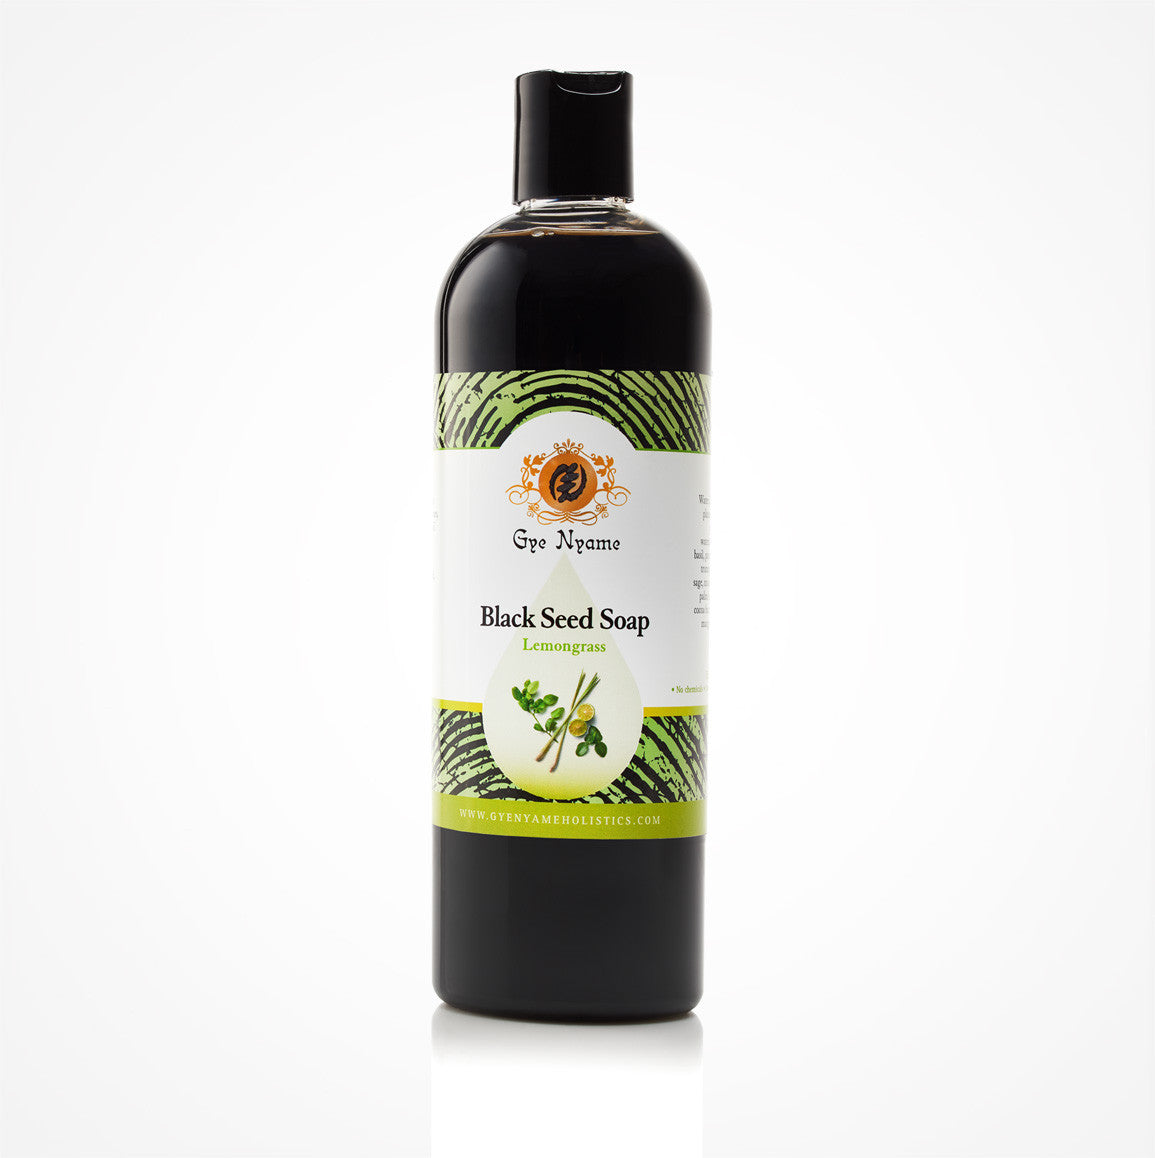 Gye Nyame Black Seed Liquid Soap Lemongrass (Nigella Sativa)